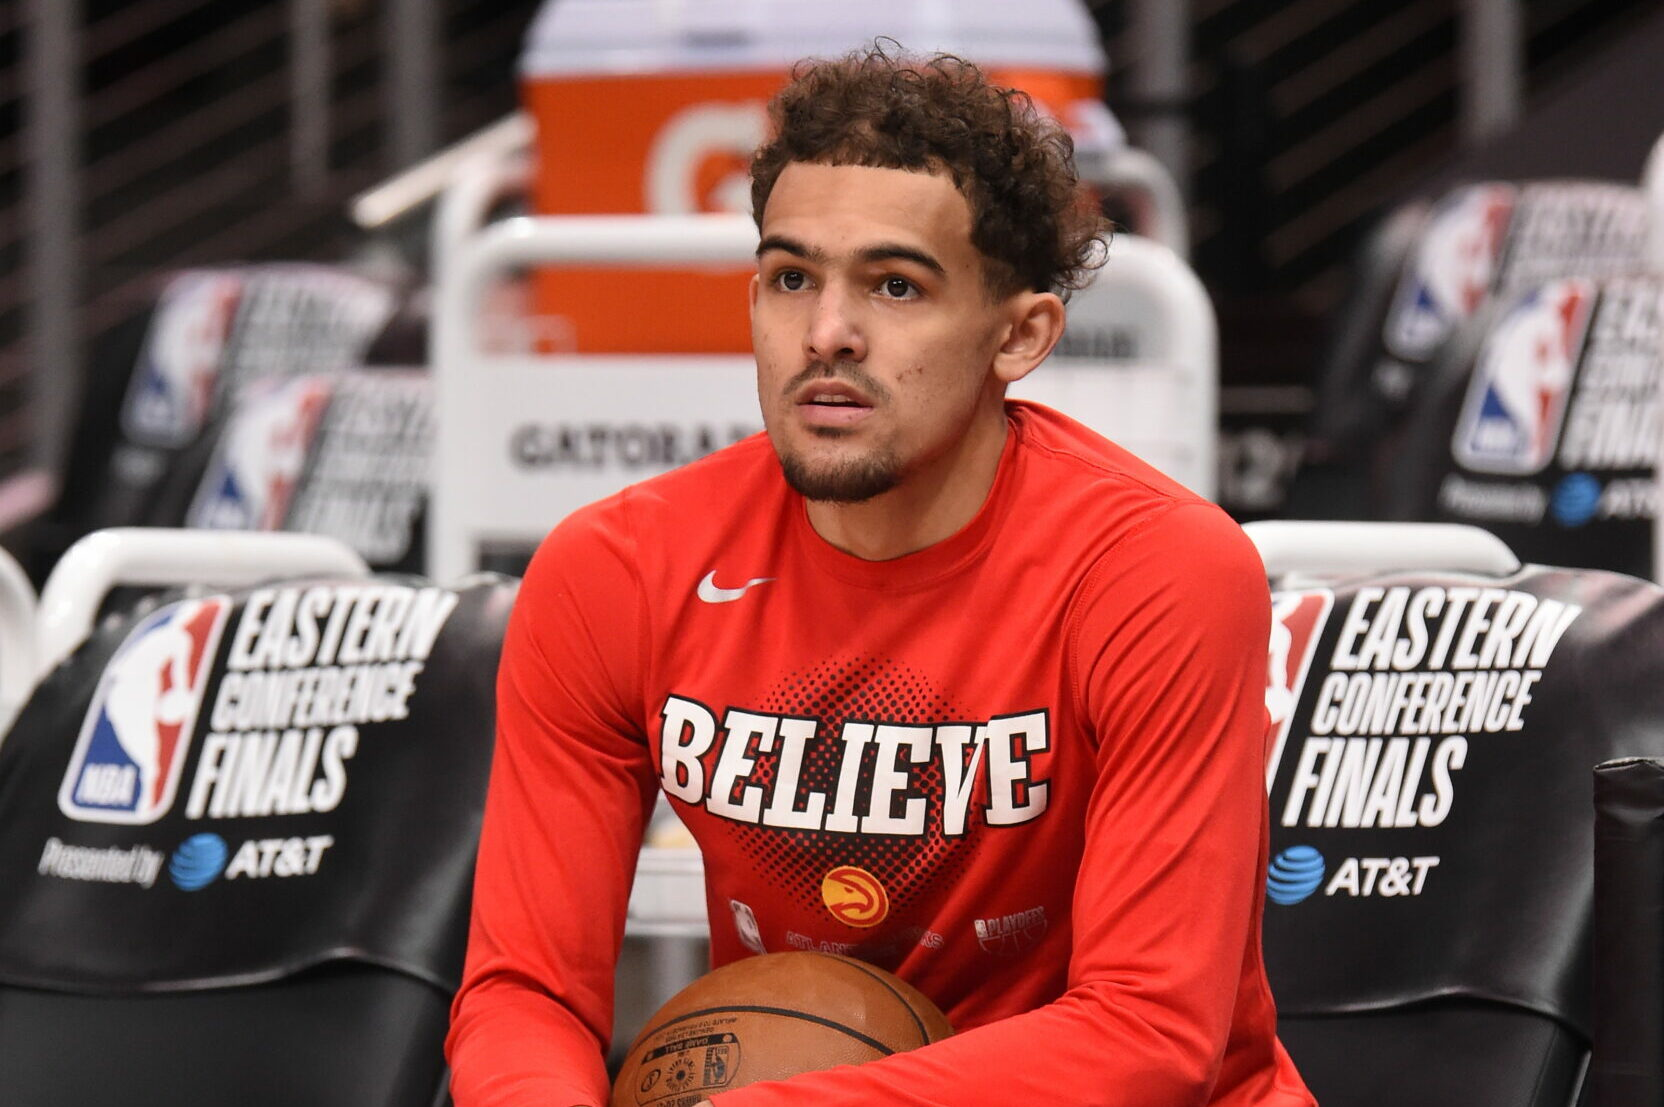 Hawks' Trae Young (foot) sidelined for Game 5 vs. Bucks